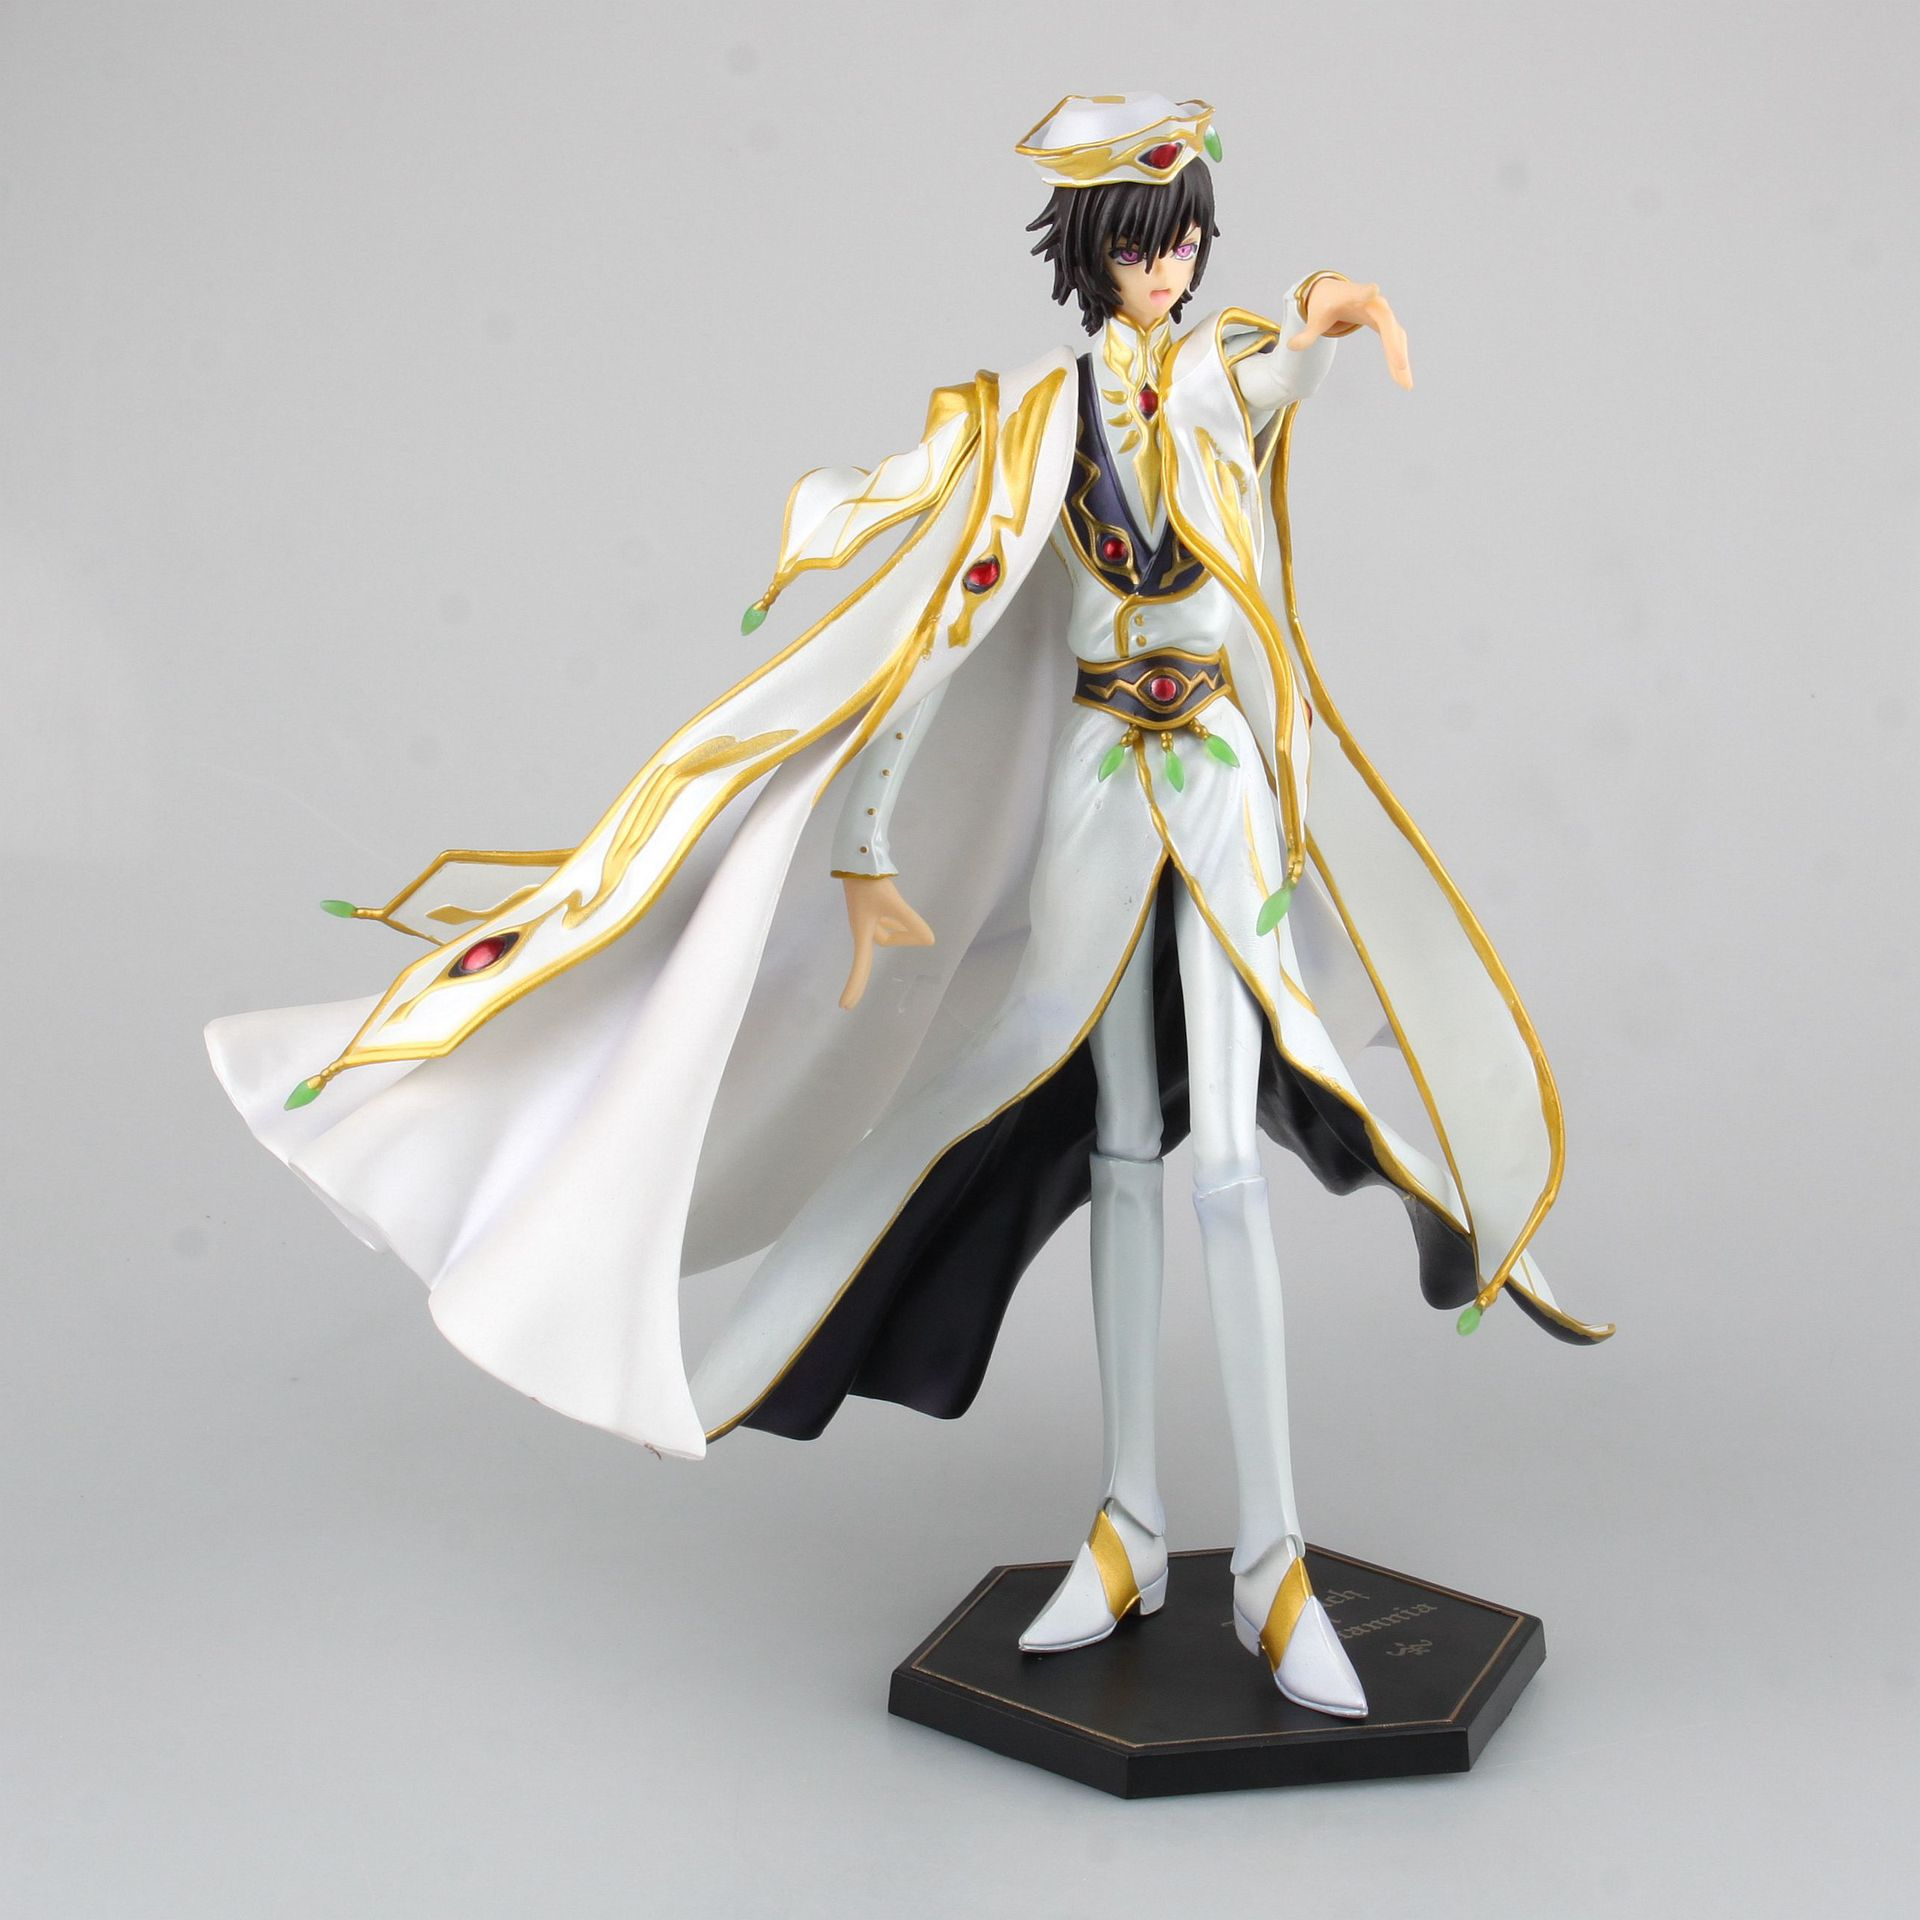 1pcs 24cm pvc Japanese anime figure Code Geass Lelouch Lamperouge action figure collectible model toys brinquedos anime figure alphamax shining blade allina pvc action figure collectible model toys doll 24cm